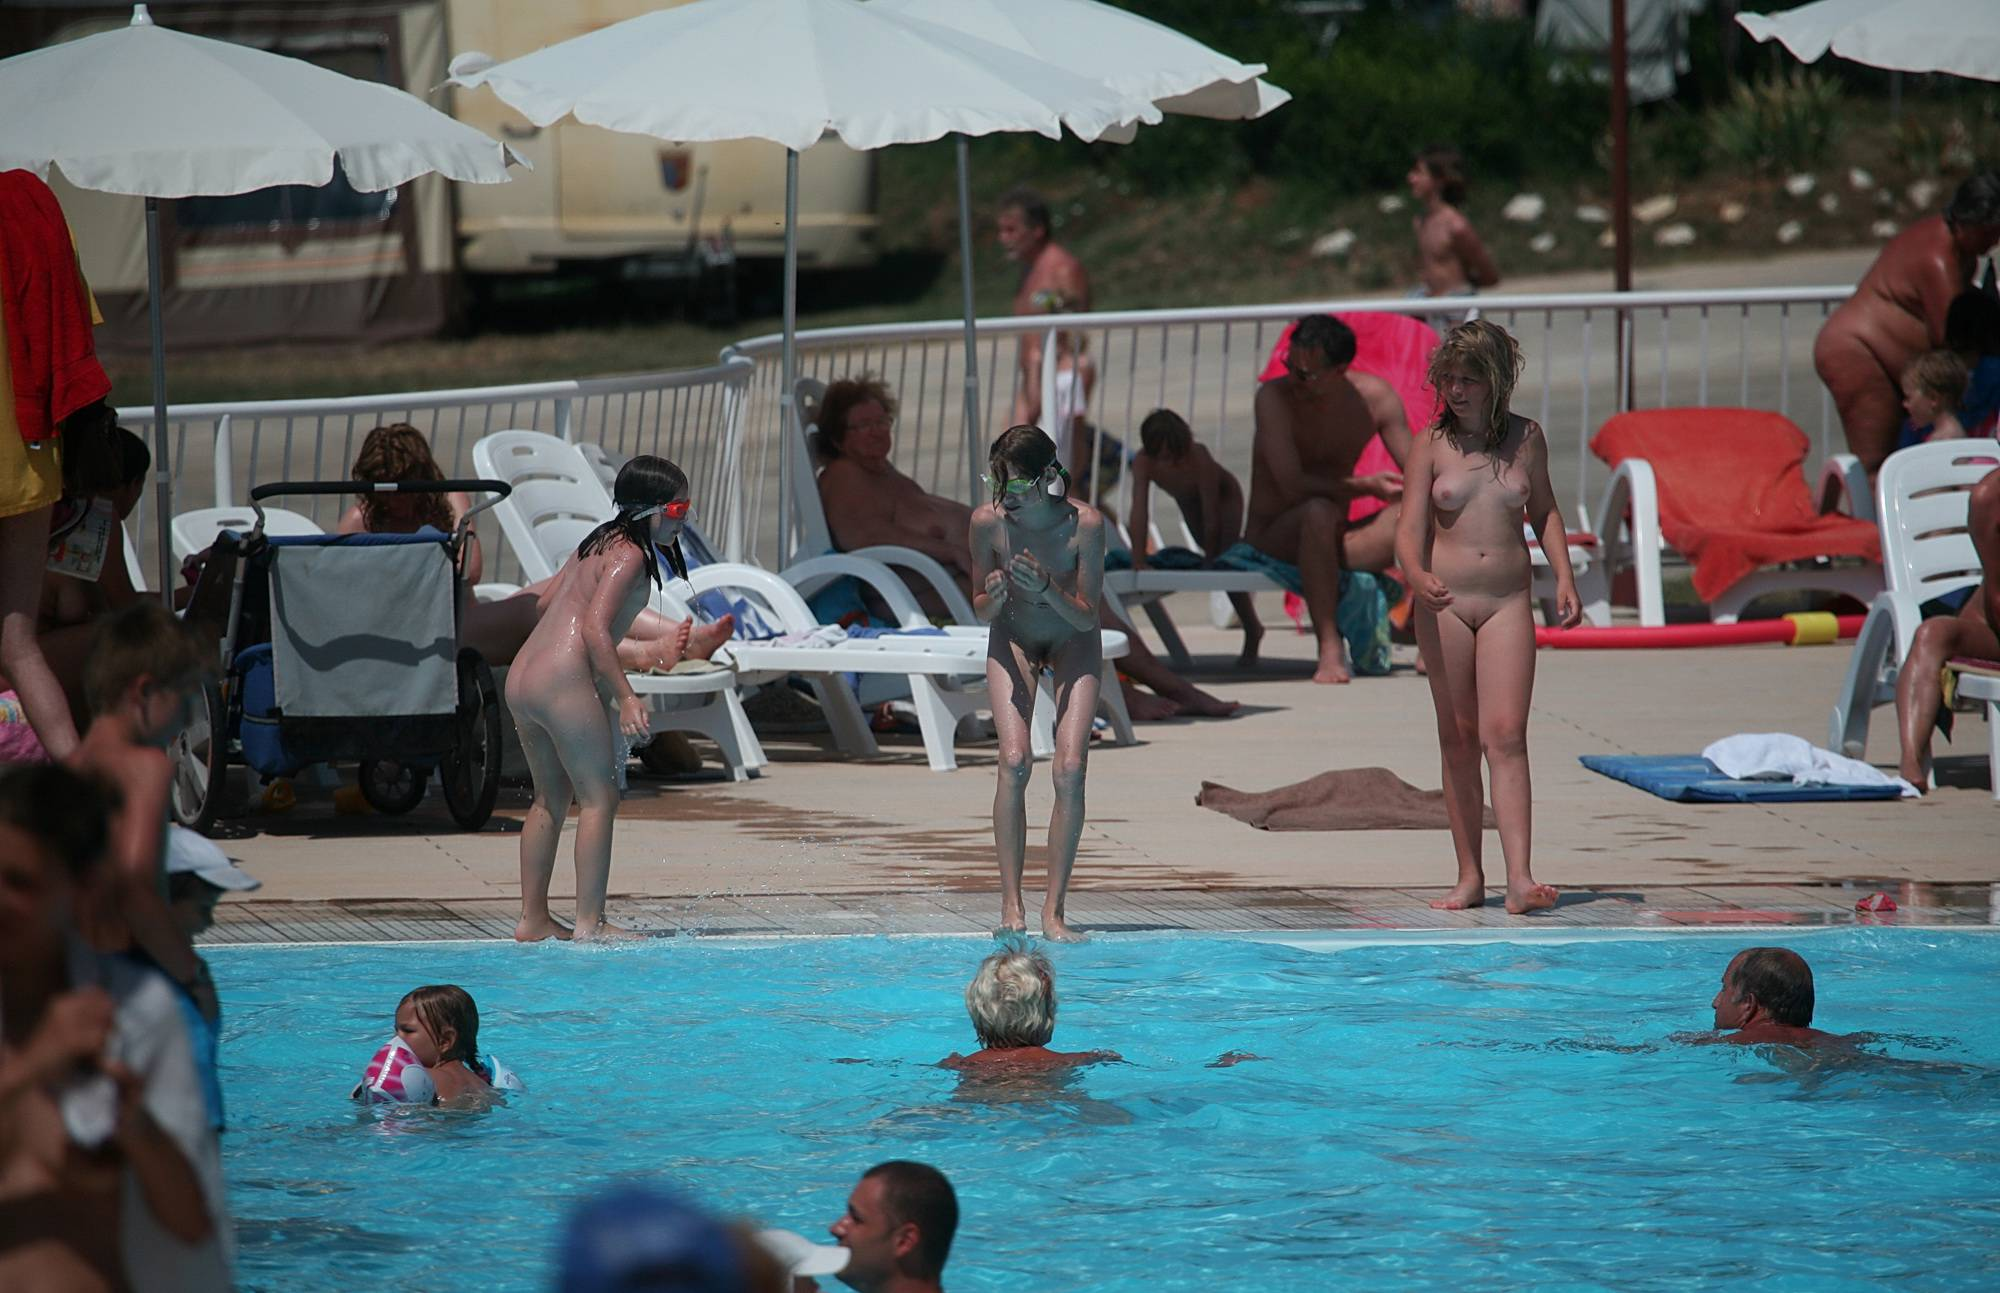 Purenudism Images-Nude Perspective and Pools - 4